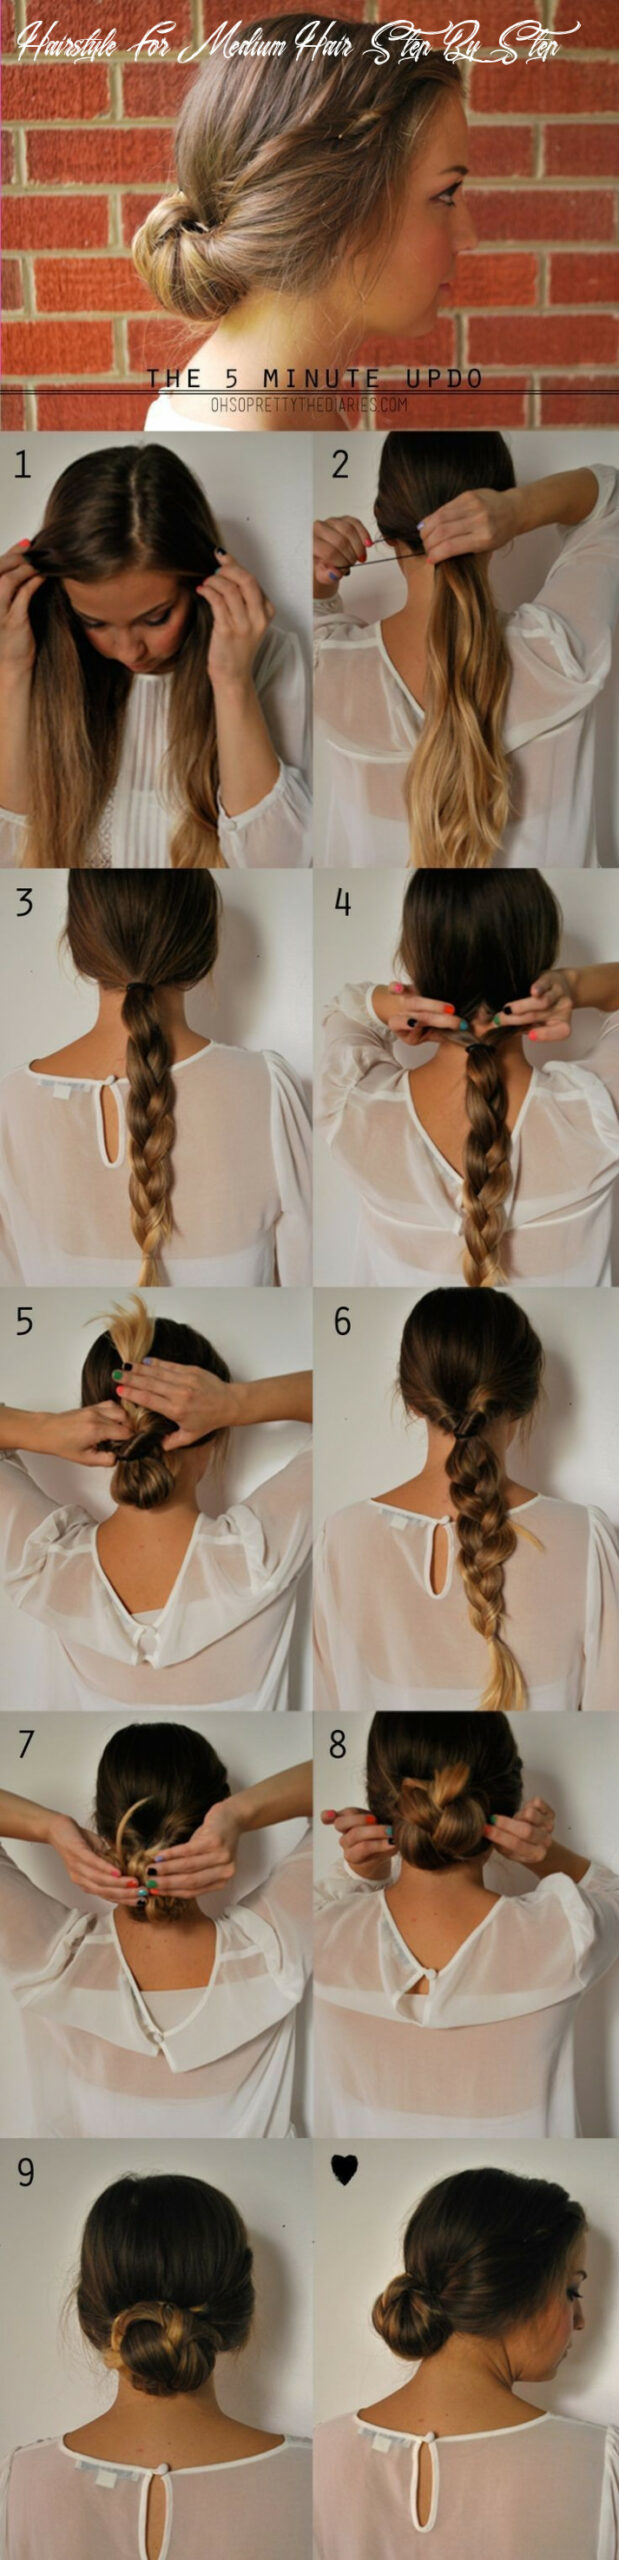 9 Cute hairstyles: Step-by-Step Hairstyles for Long Hair ...